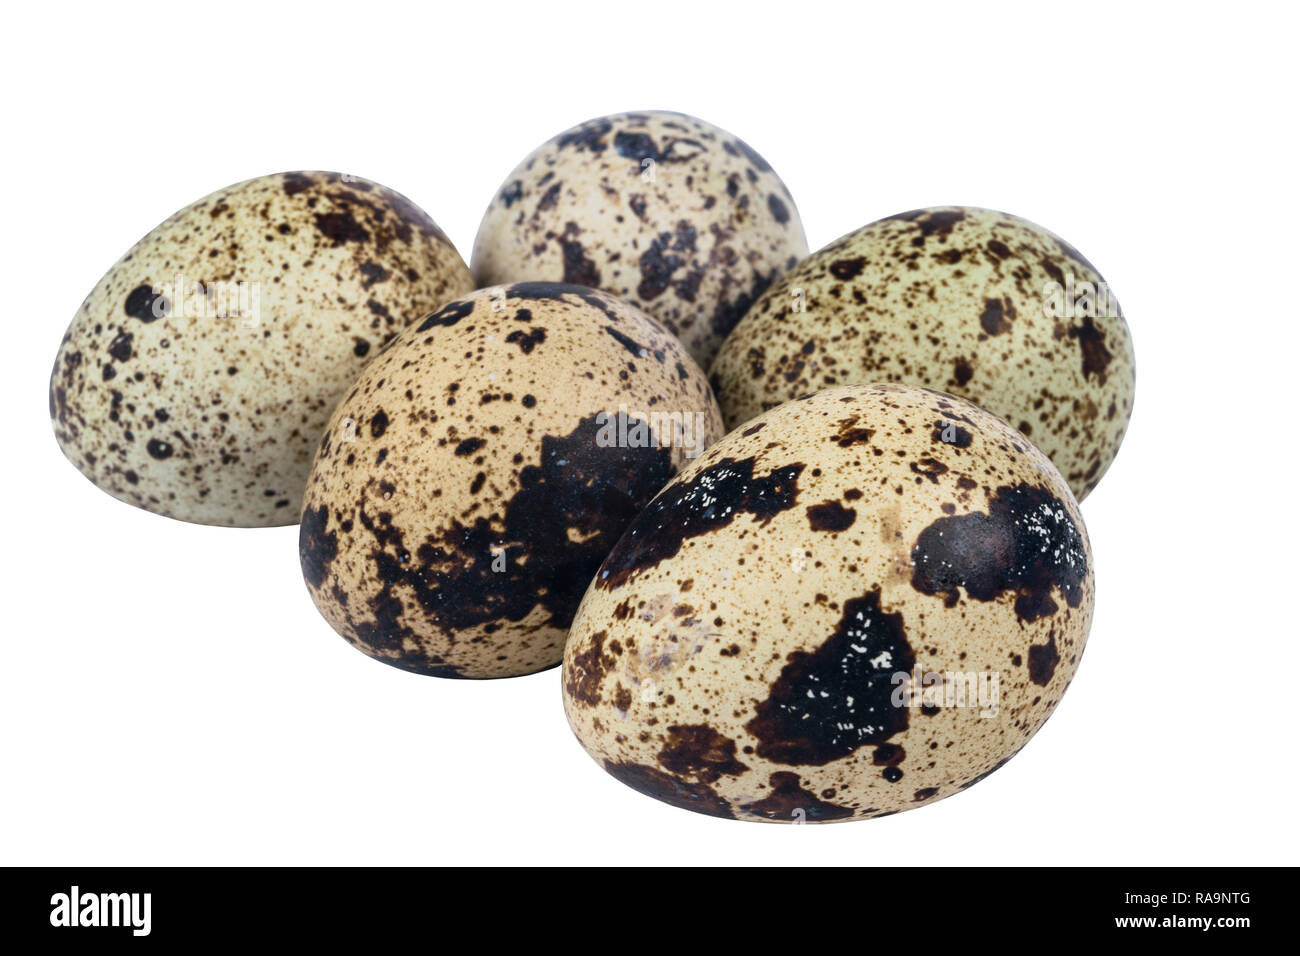 Isolated quail eggs. Big collection of quail eggs isolated on a white background. - Stock Image